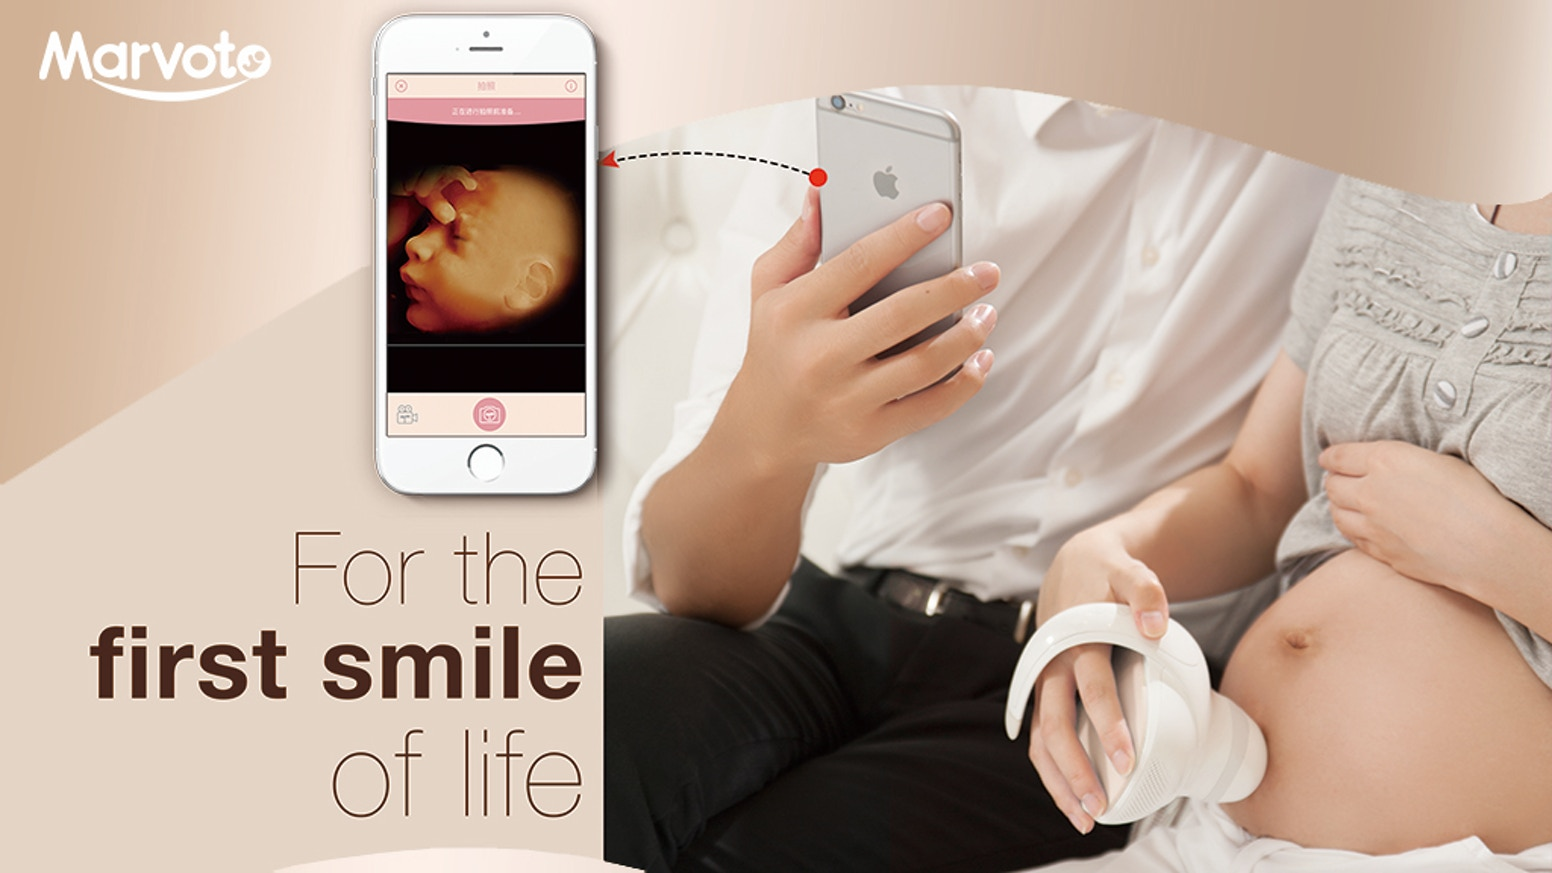 Marvoto Fetus Camera M1 is a product uses ultrasound Technology. Mom-to-be can use it to take pictures and videos for fetus at home!